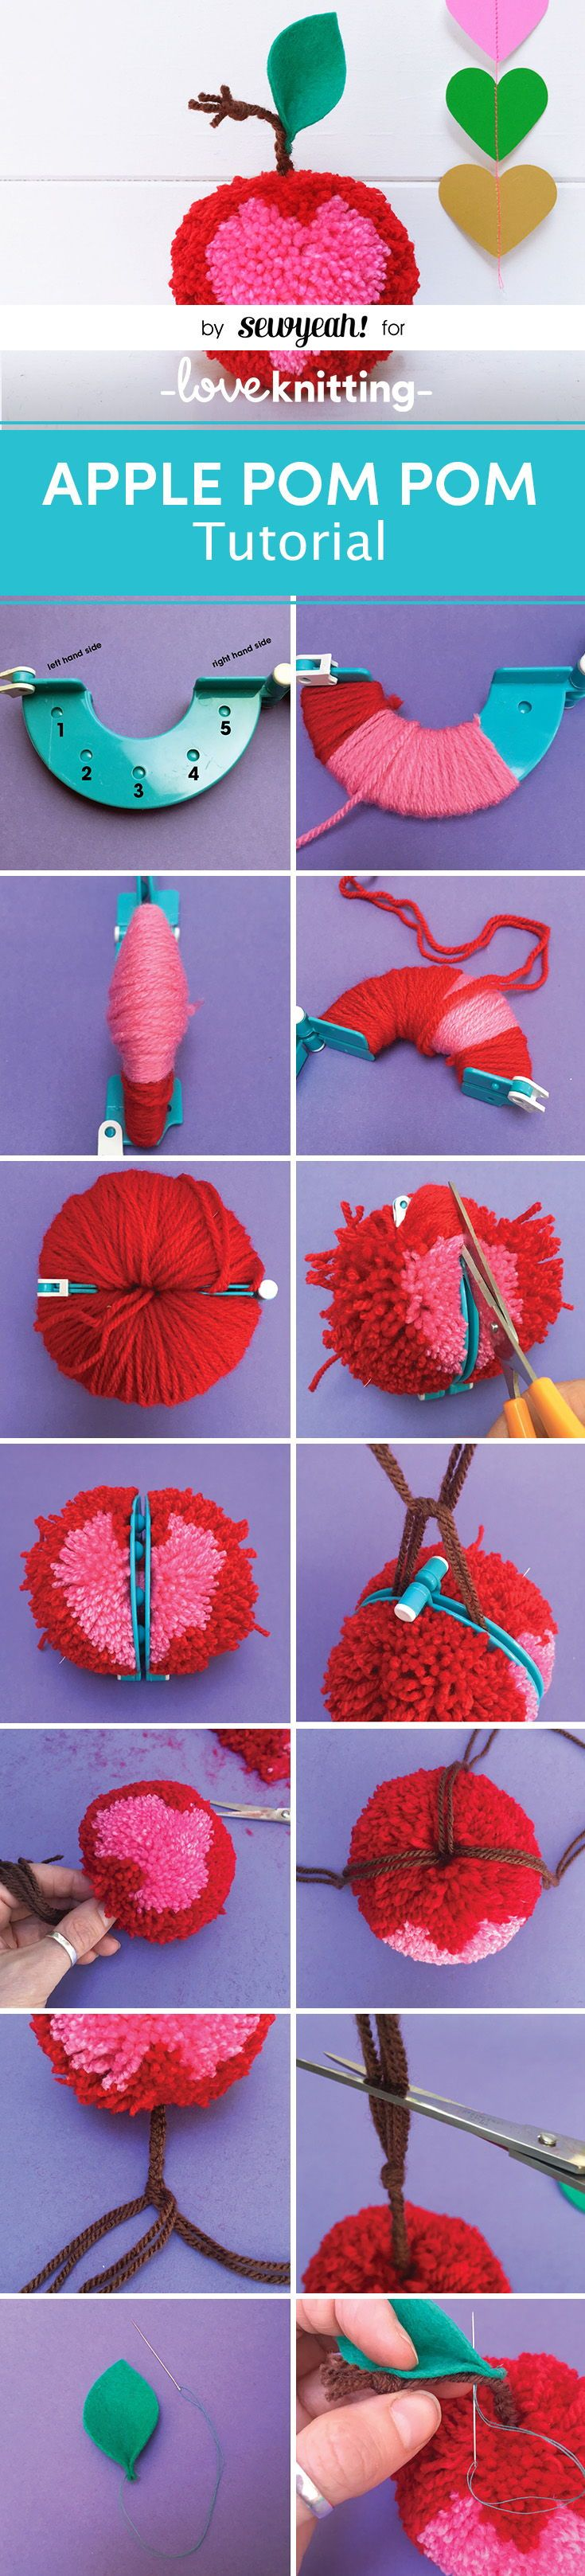 A FREE tutorial for how to make an apple pom pom by Christine Leech of Sew Yeah! Learn how to make a pom pom decoration with FREE instructions on the LoveKnitting Blog.